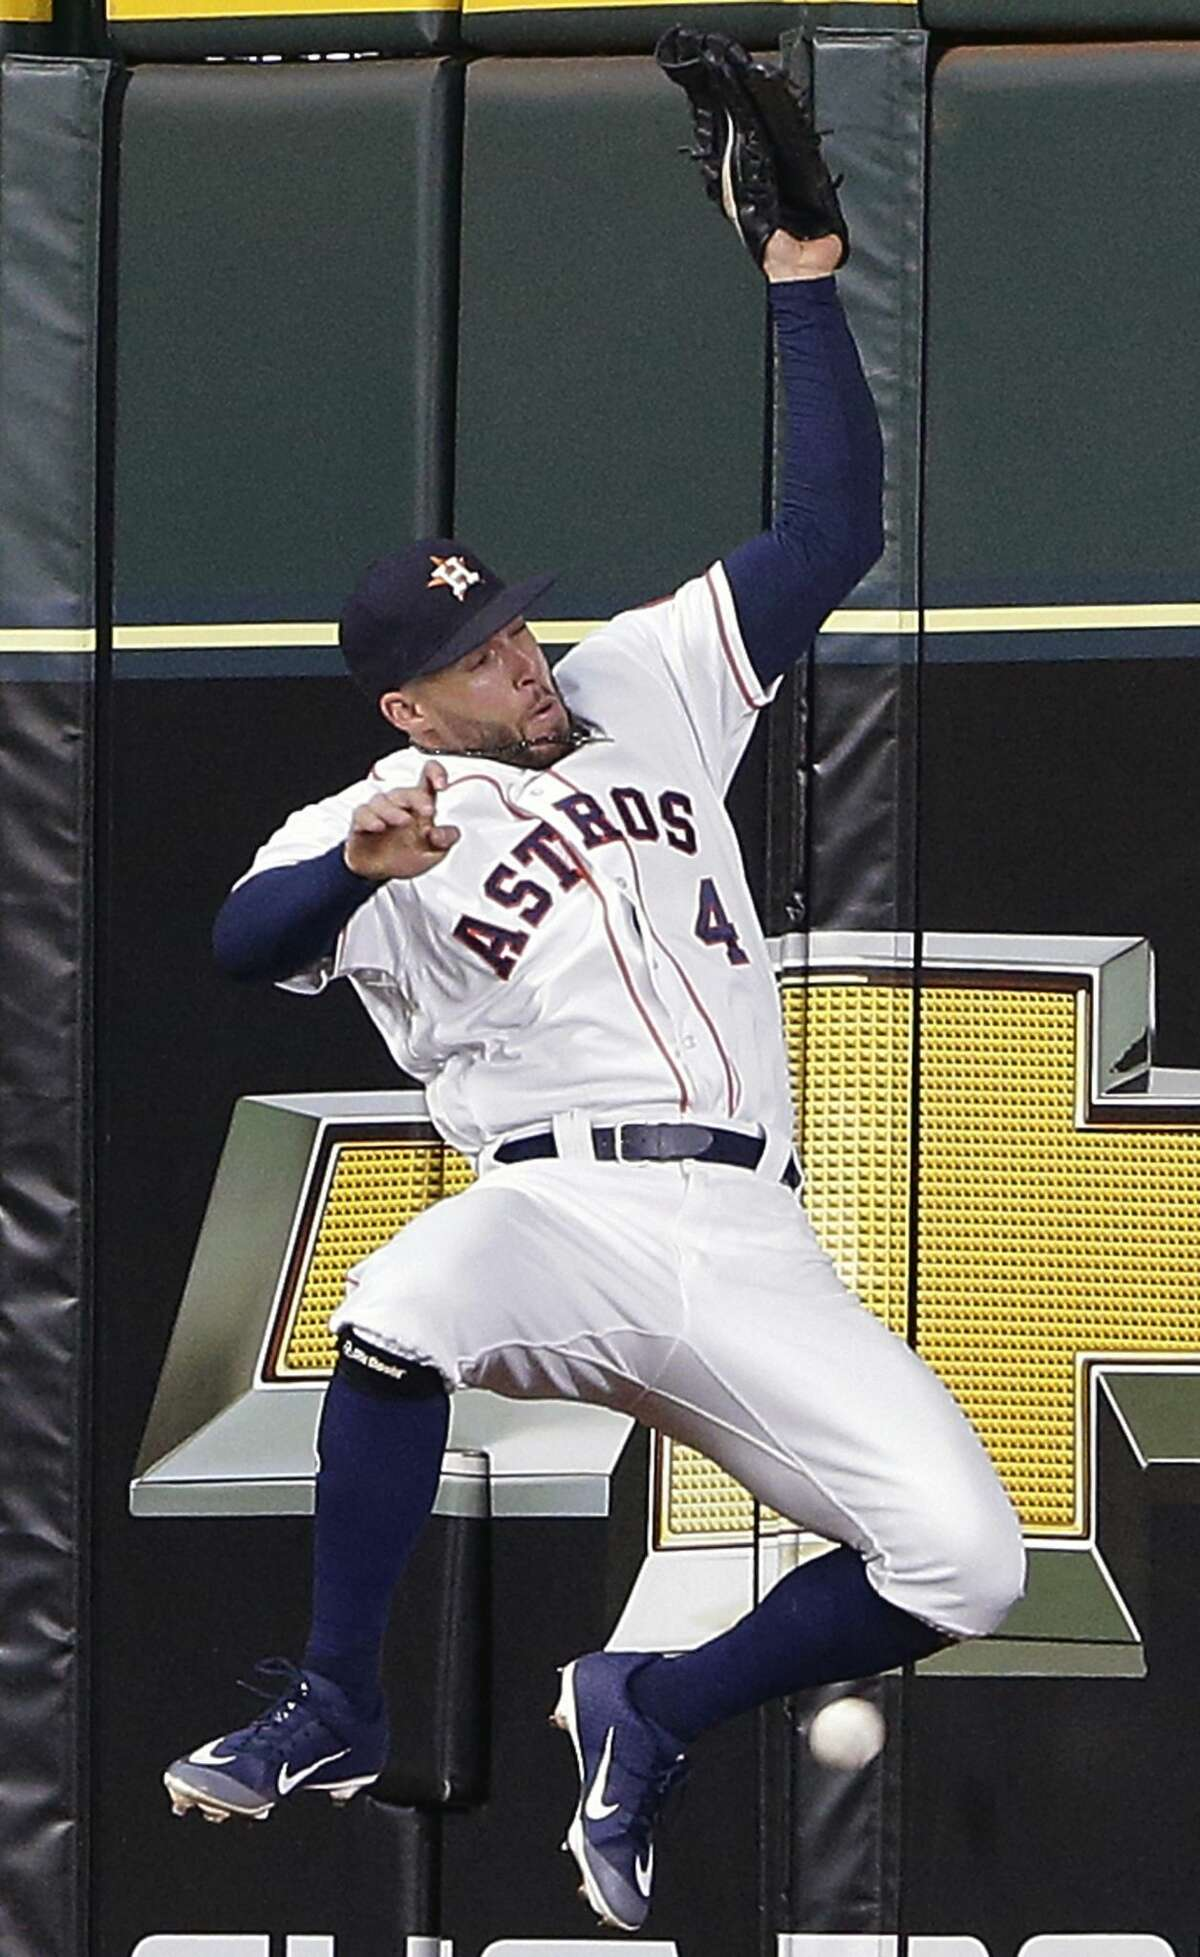 Houston Astros center fielder George Springer (4) misses a catch against the center field wall on the inside-the-park home run by Texas Rangers' Rougned Odor (12) during the fifth inning of a baseball game Saturday, July 28, 2018, in Houston. (AP Photo/Michael Wyke)